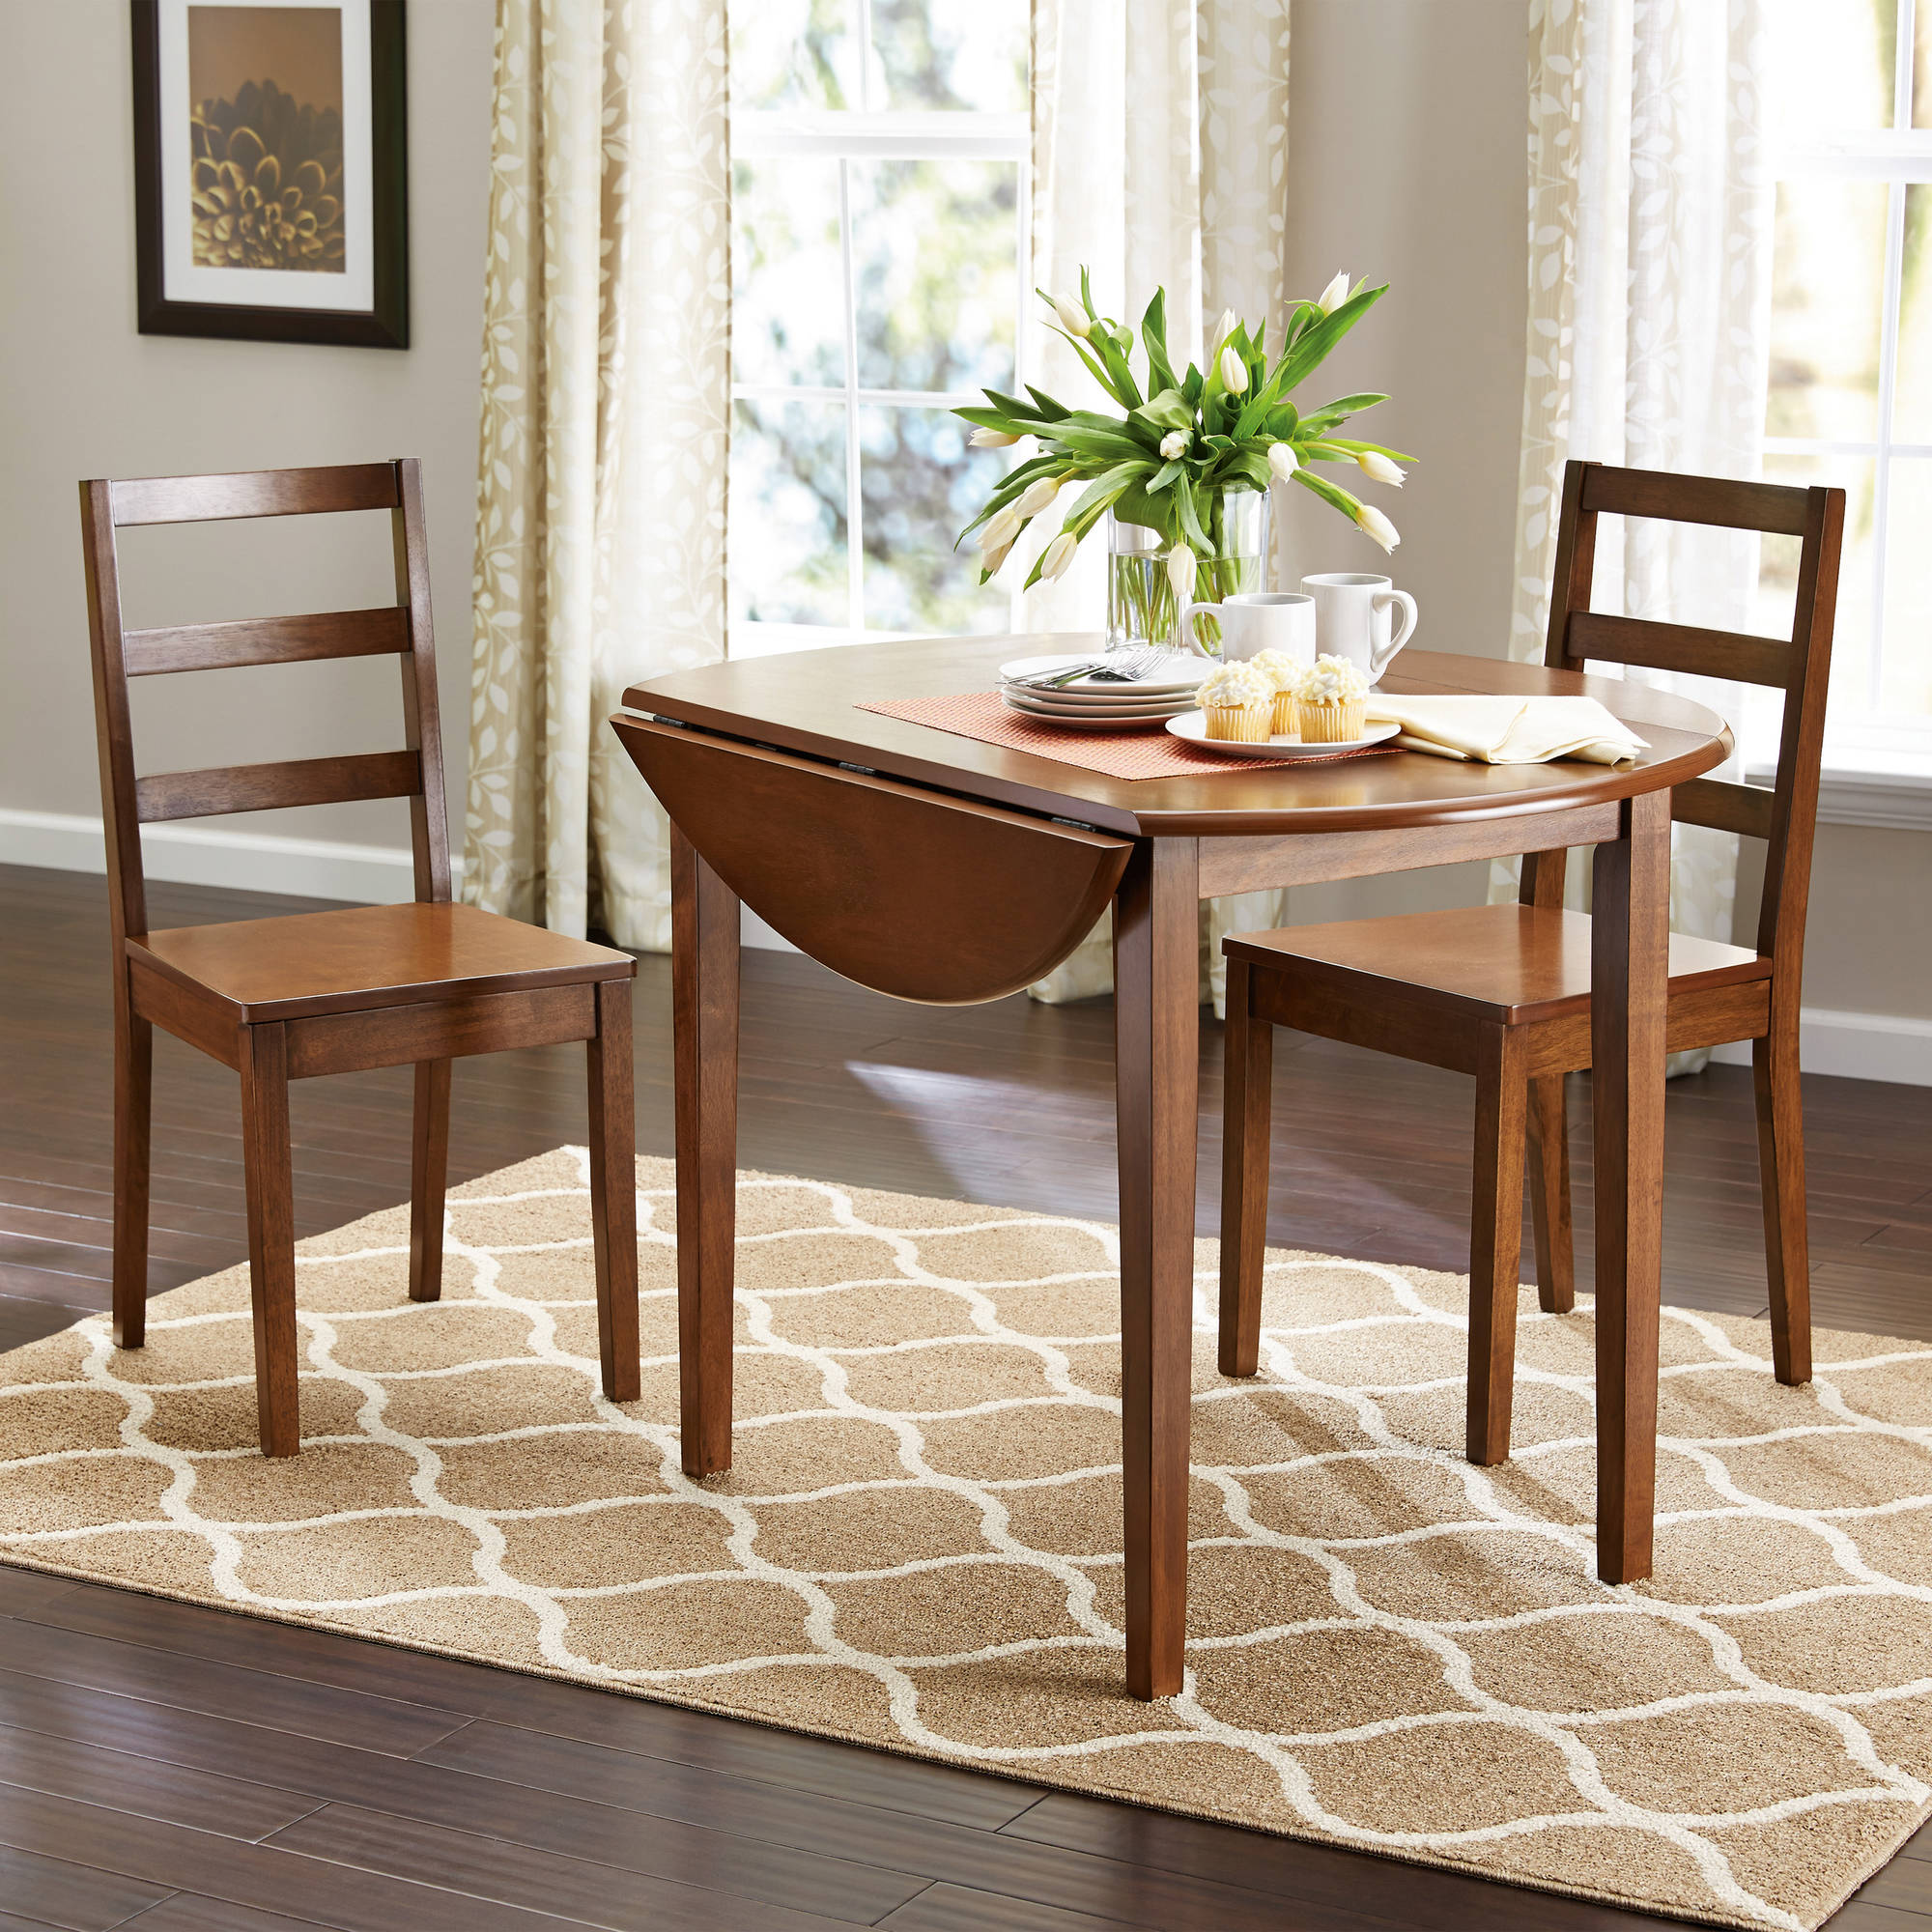 Mainstays 3 Piece Drop Leaf Dining Set Medium Oak Finish. Awesome Dining Room Table Sets With Leaf Contemporary   Home